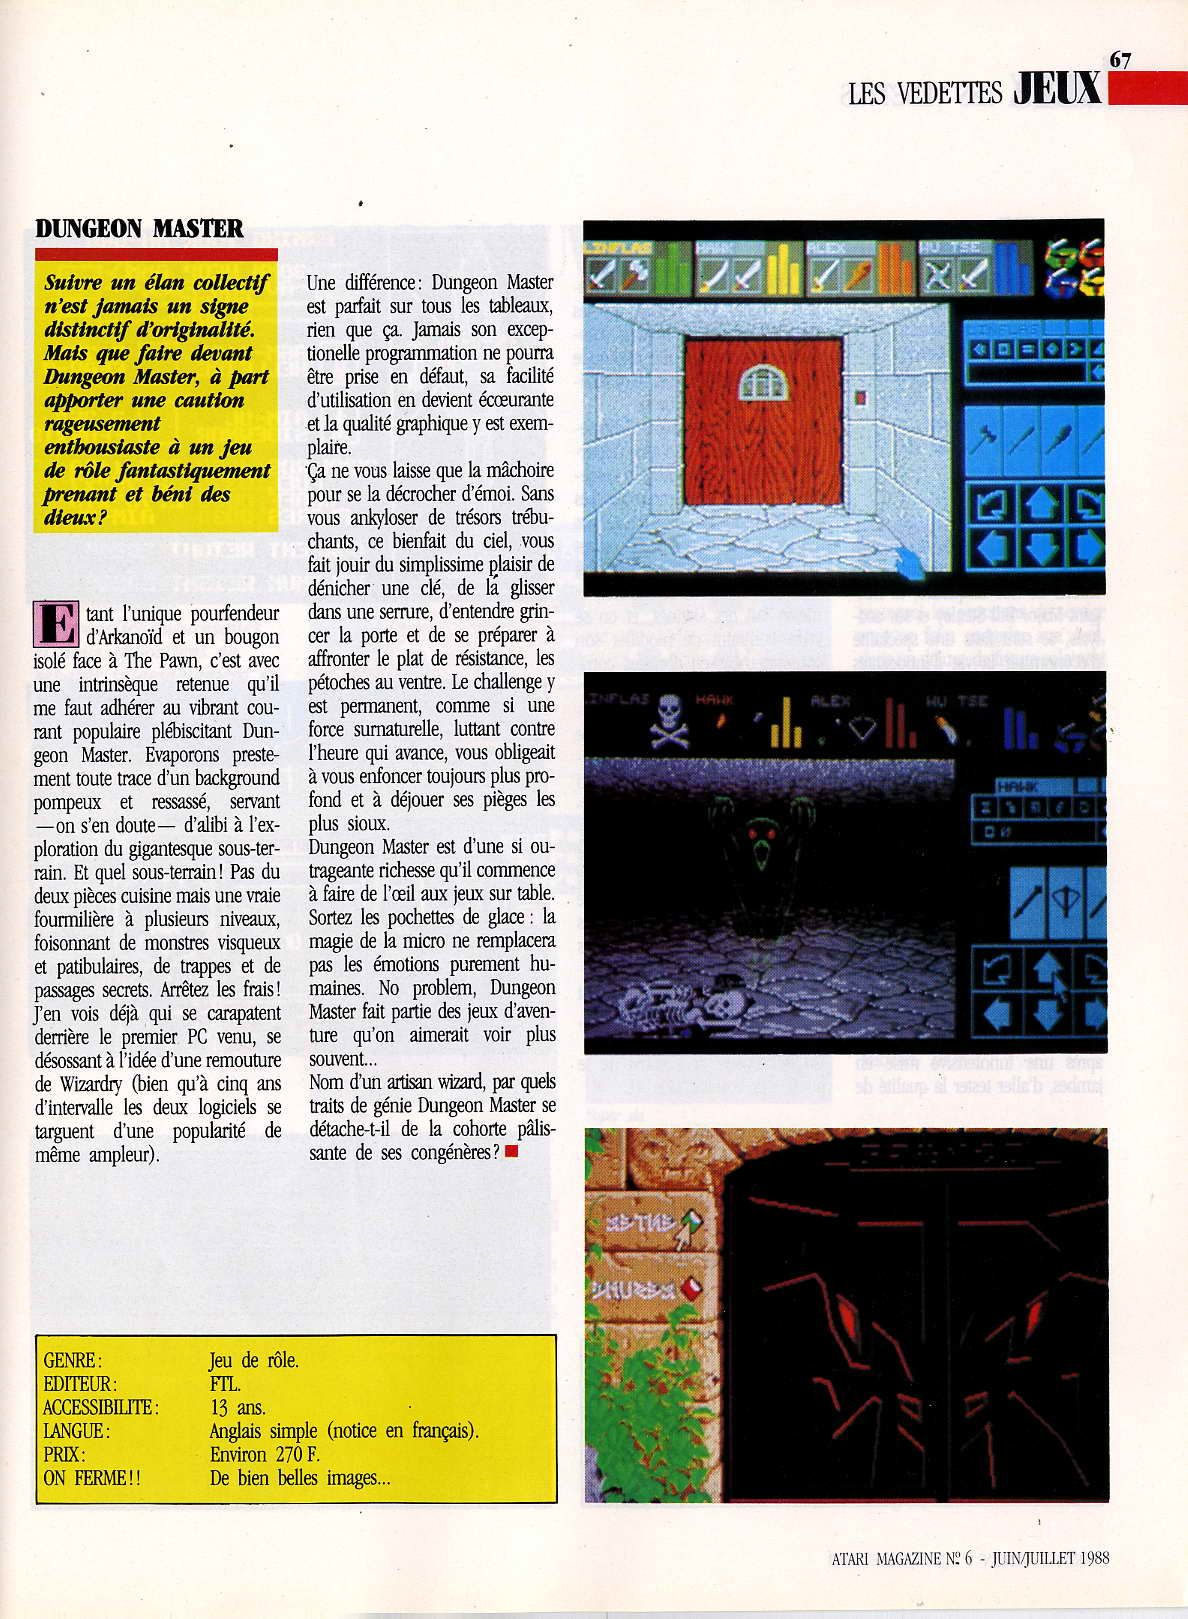 Dungeon Master for Atari ST Review published in French magazine 'Atari magazine (First Version)', Issue #6, June 1988, Page 67